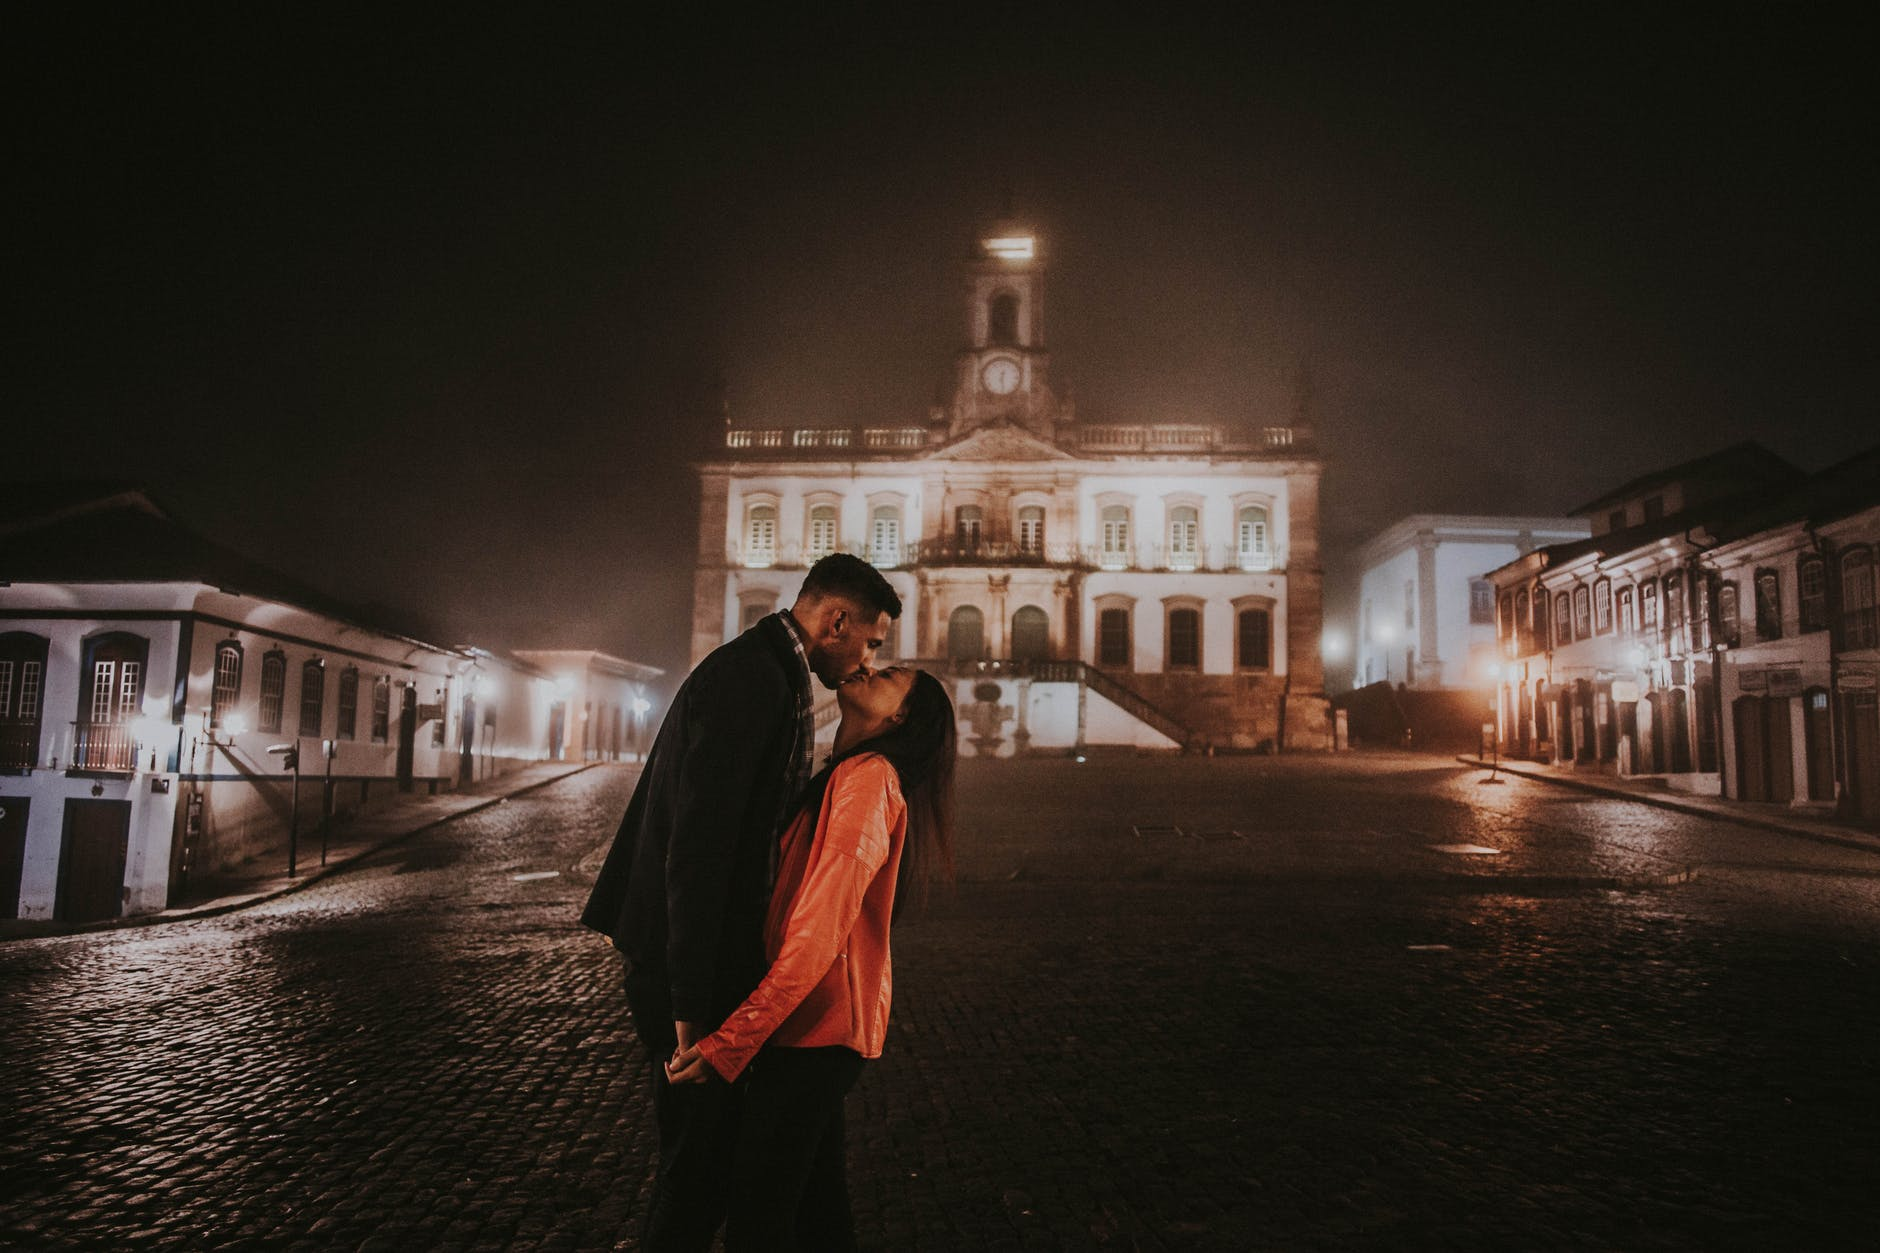 photo of couple kissing at night with building in the background